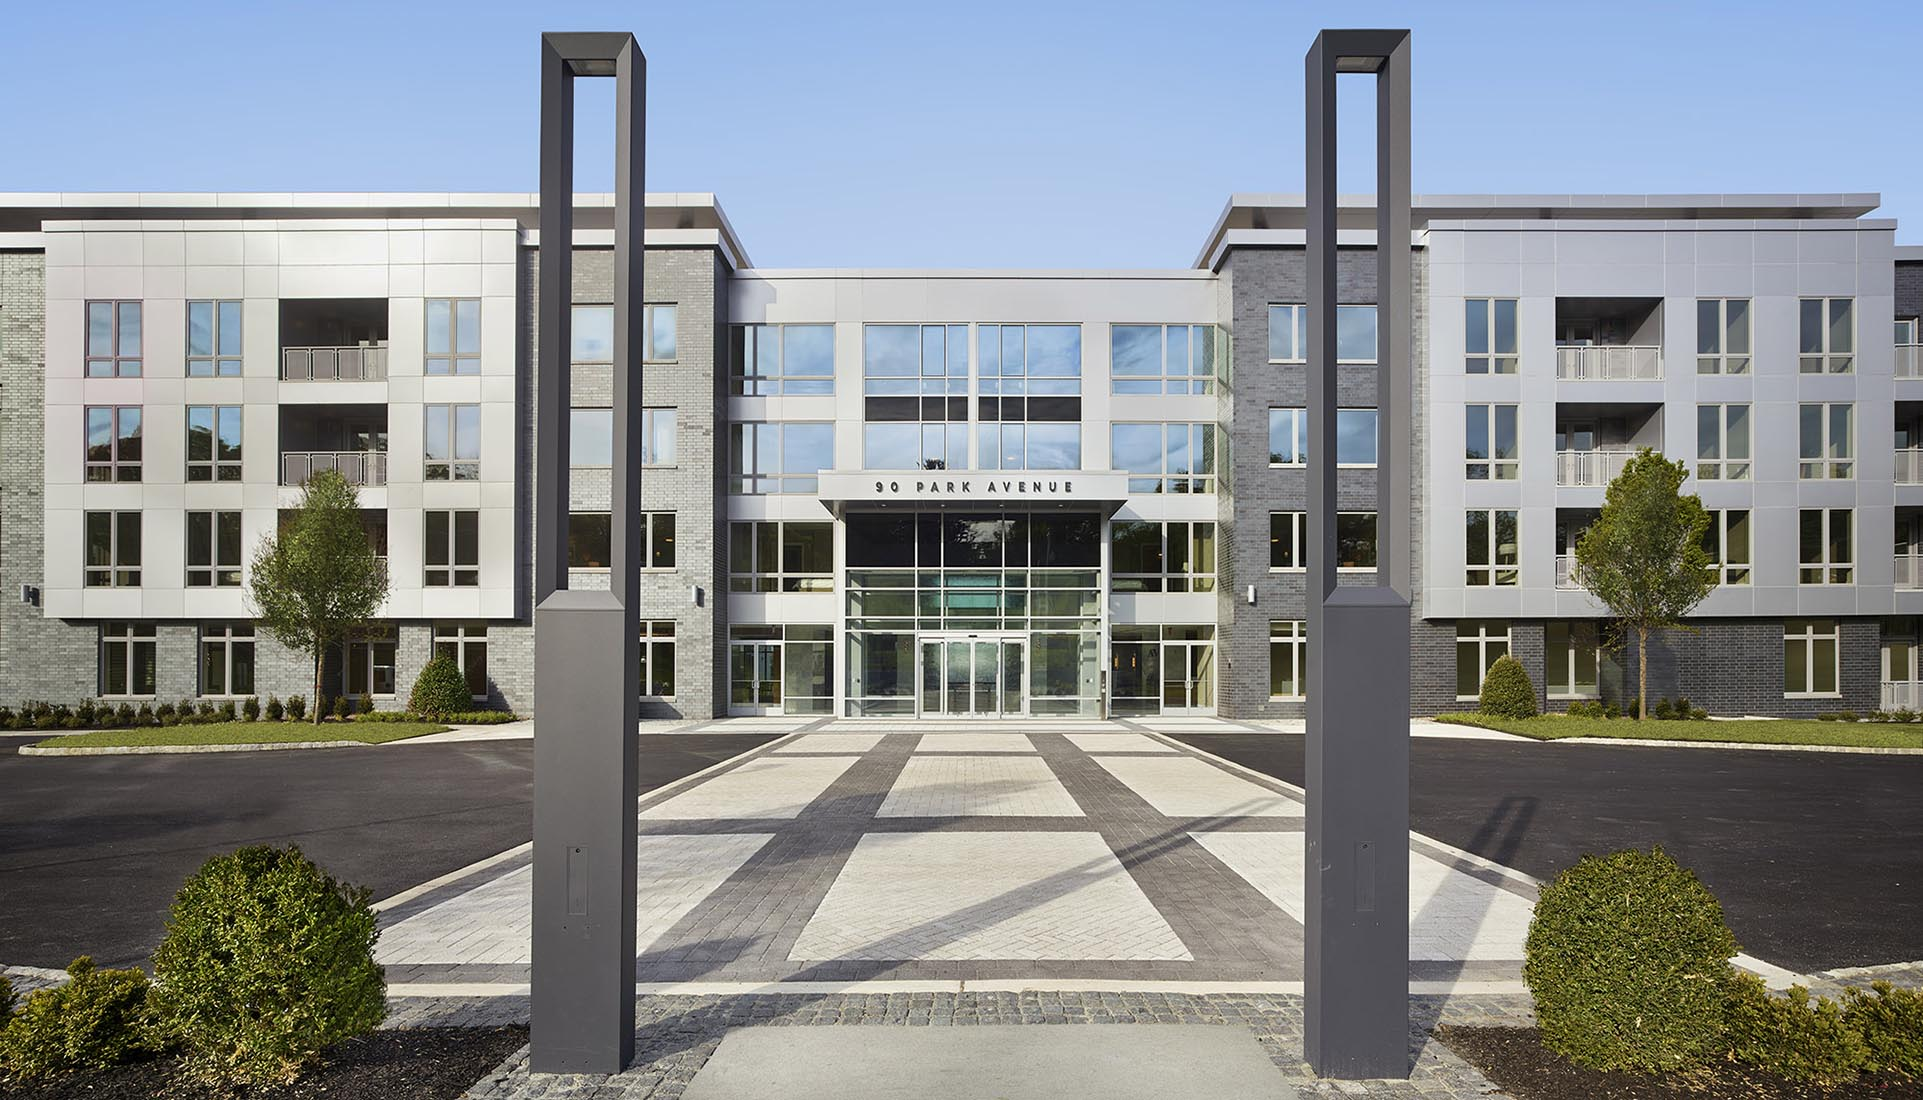 AVE Florham Park exterior facade during the day